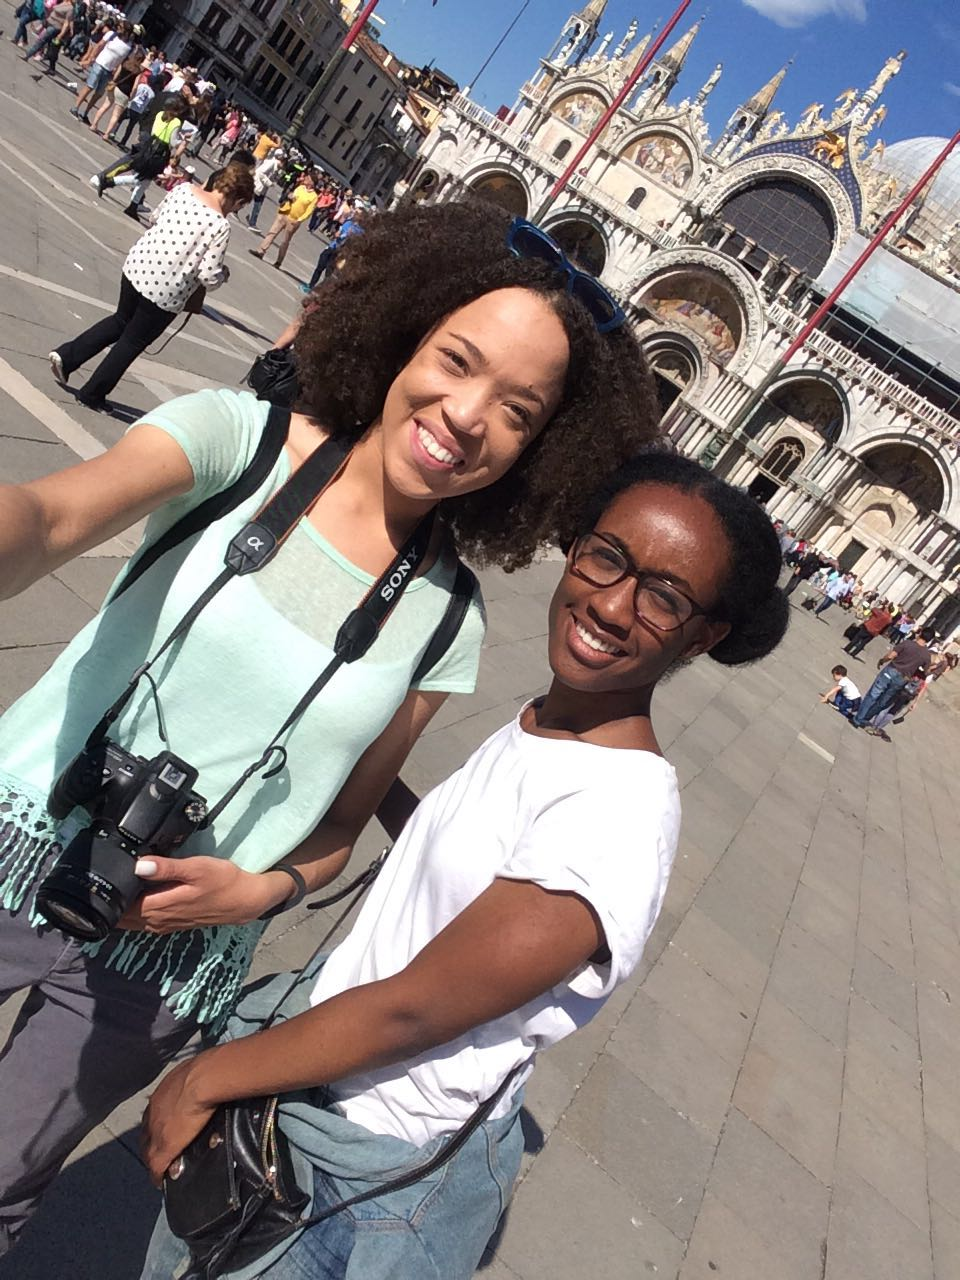 With my fellow Bison in San Marco Square